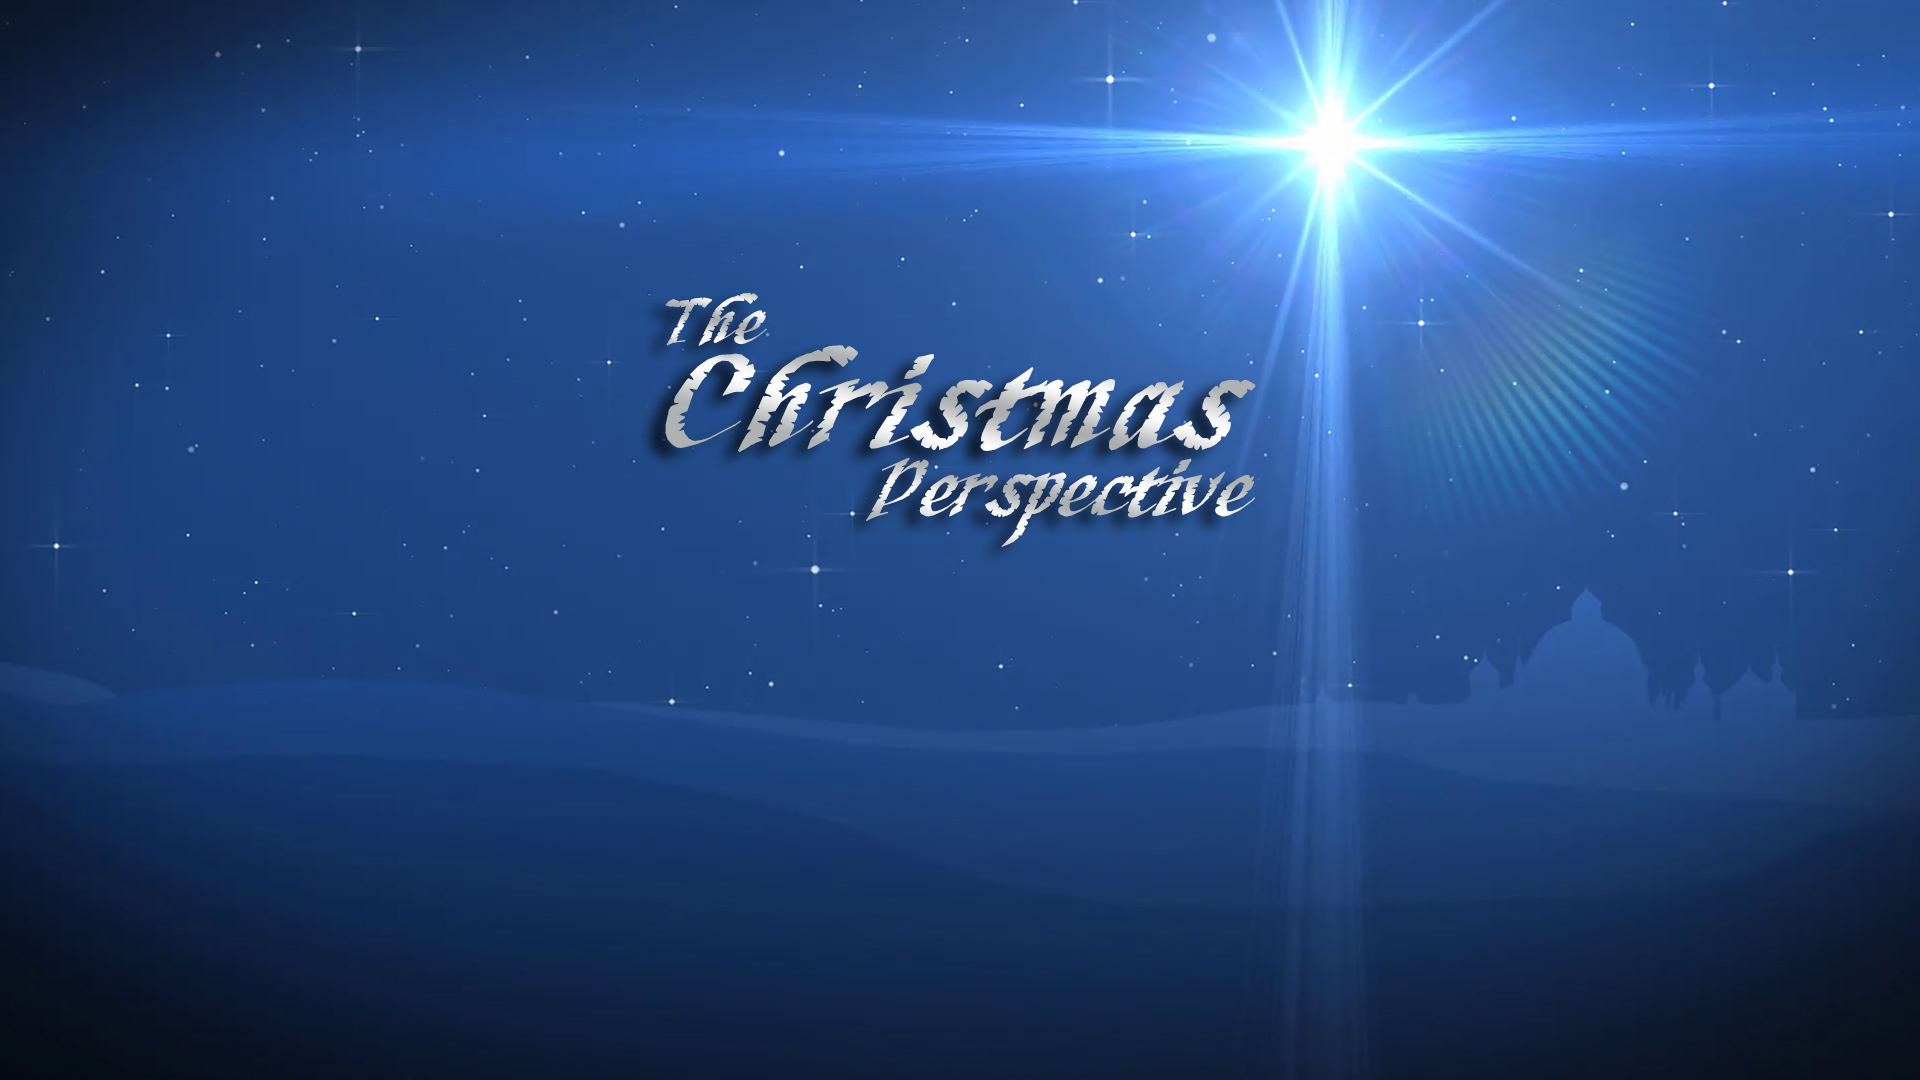 The Christmas Perspective